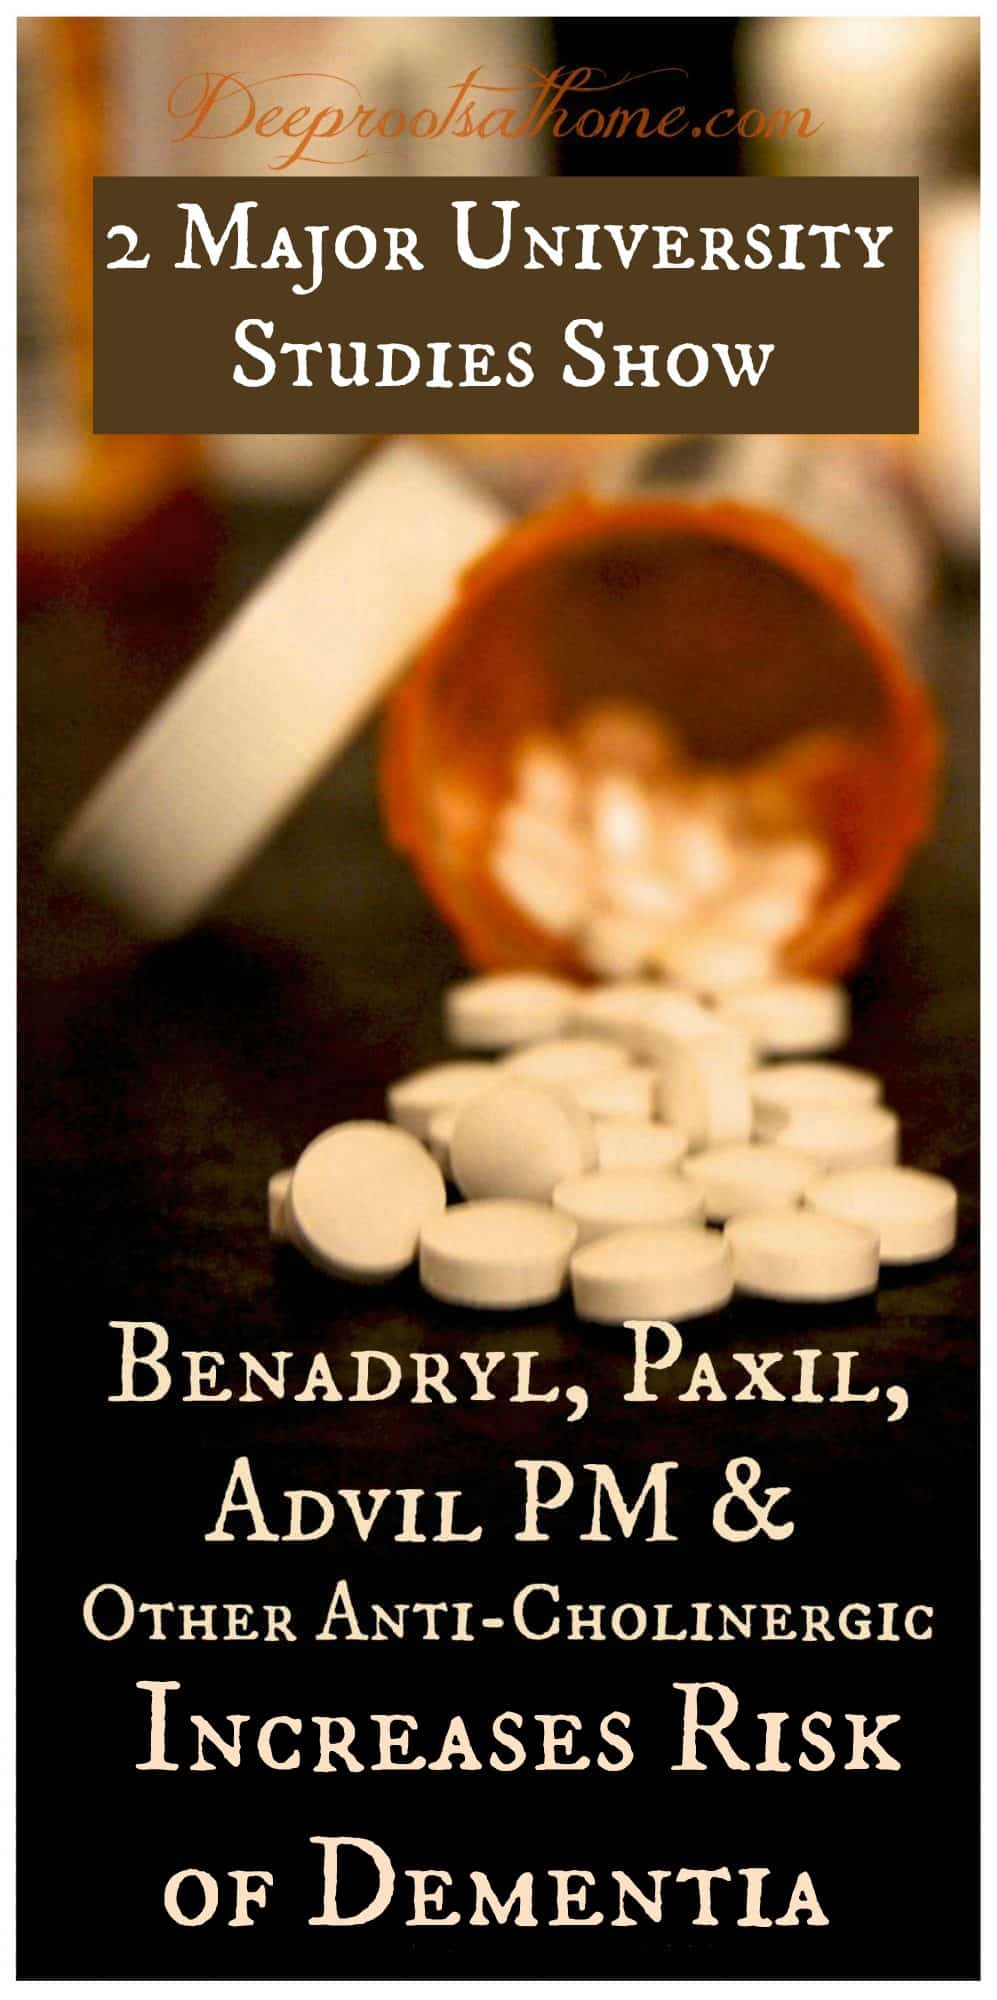 Benadryl, Paxil, Advil PM & Other OTC Drugs Linked to Dementia?